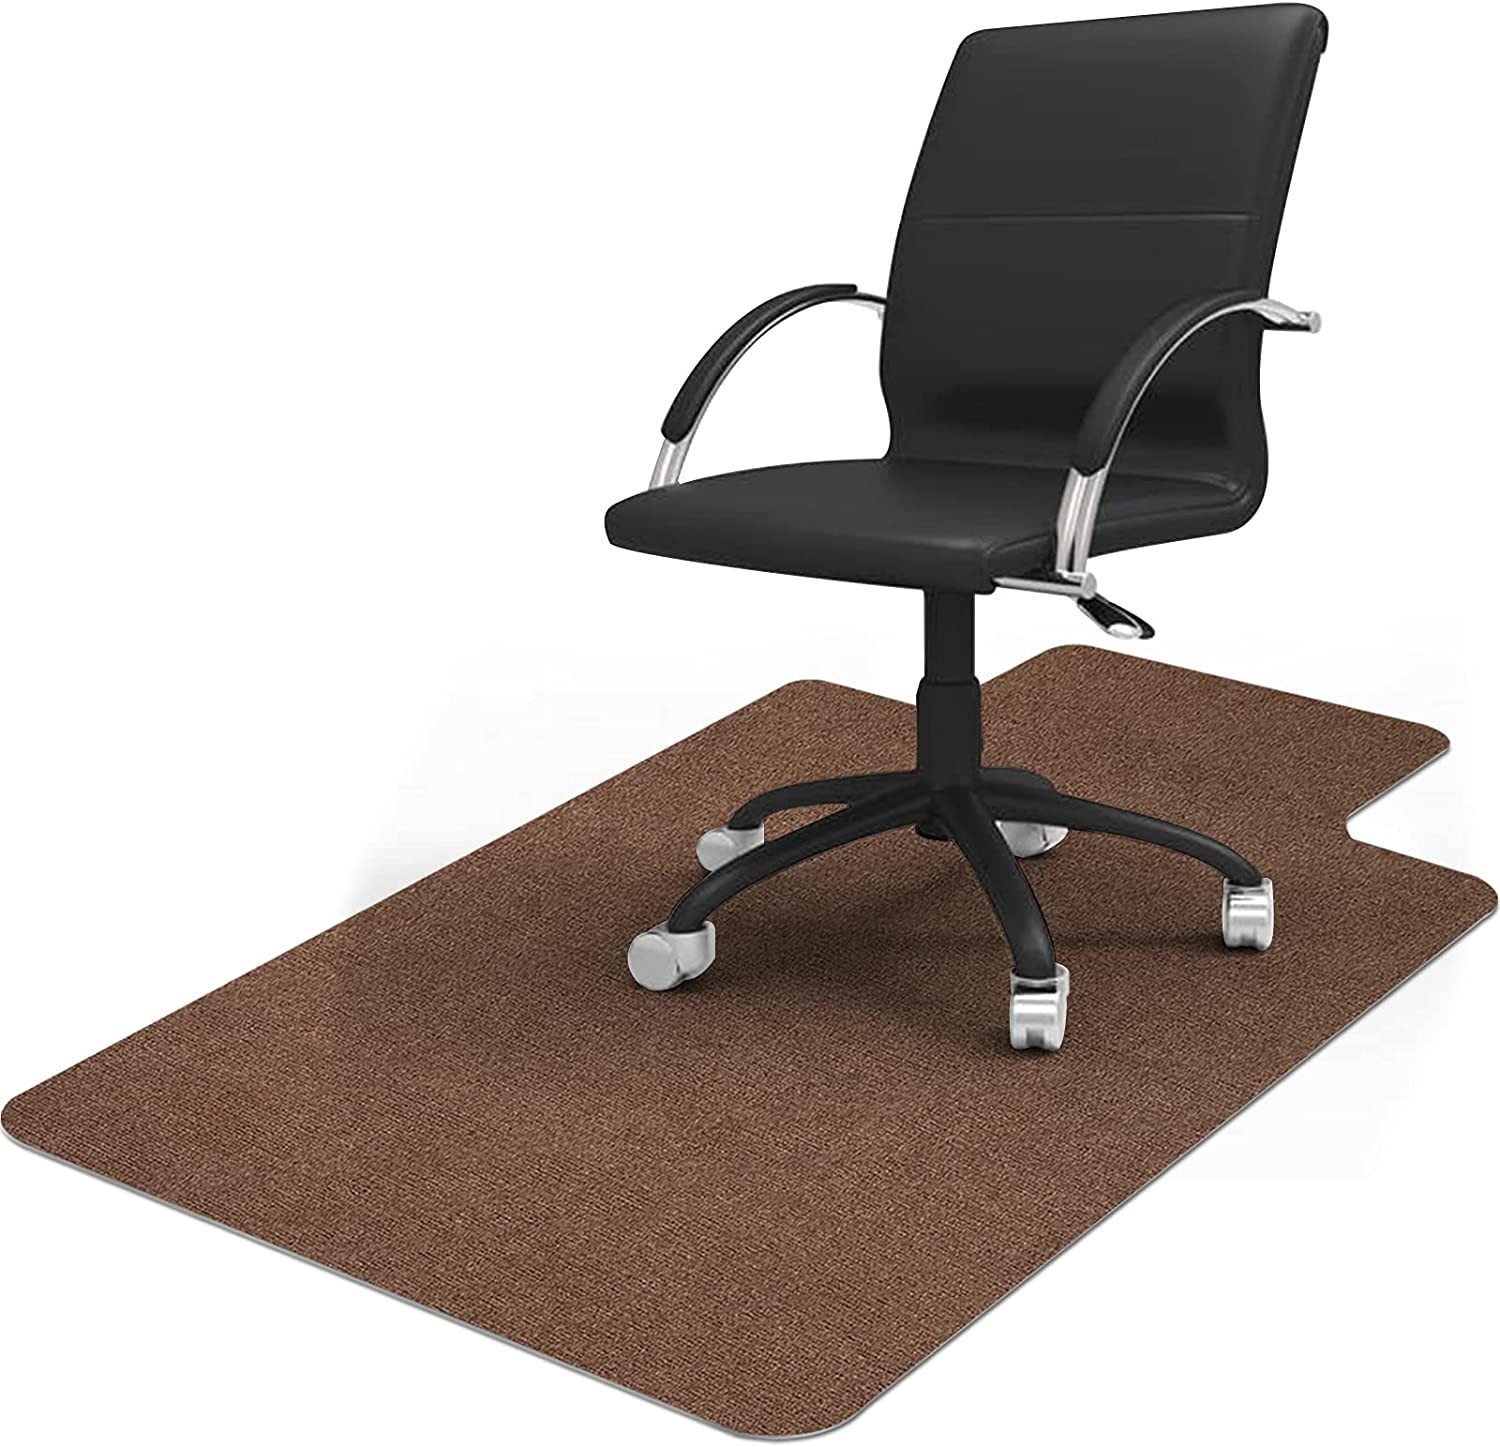 Vicwe Office Special Campaign Chair Mat 1 6